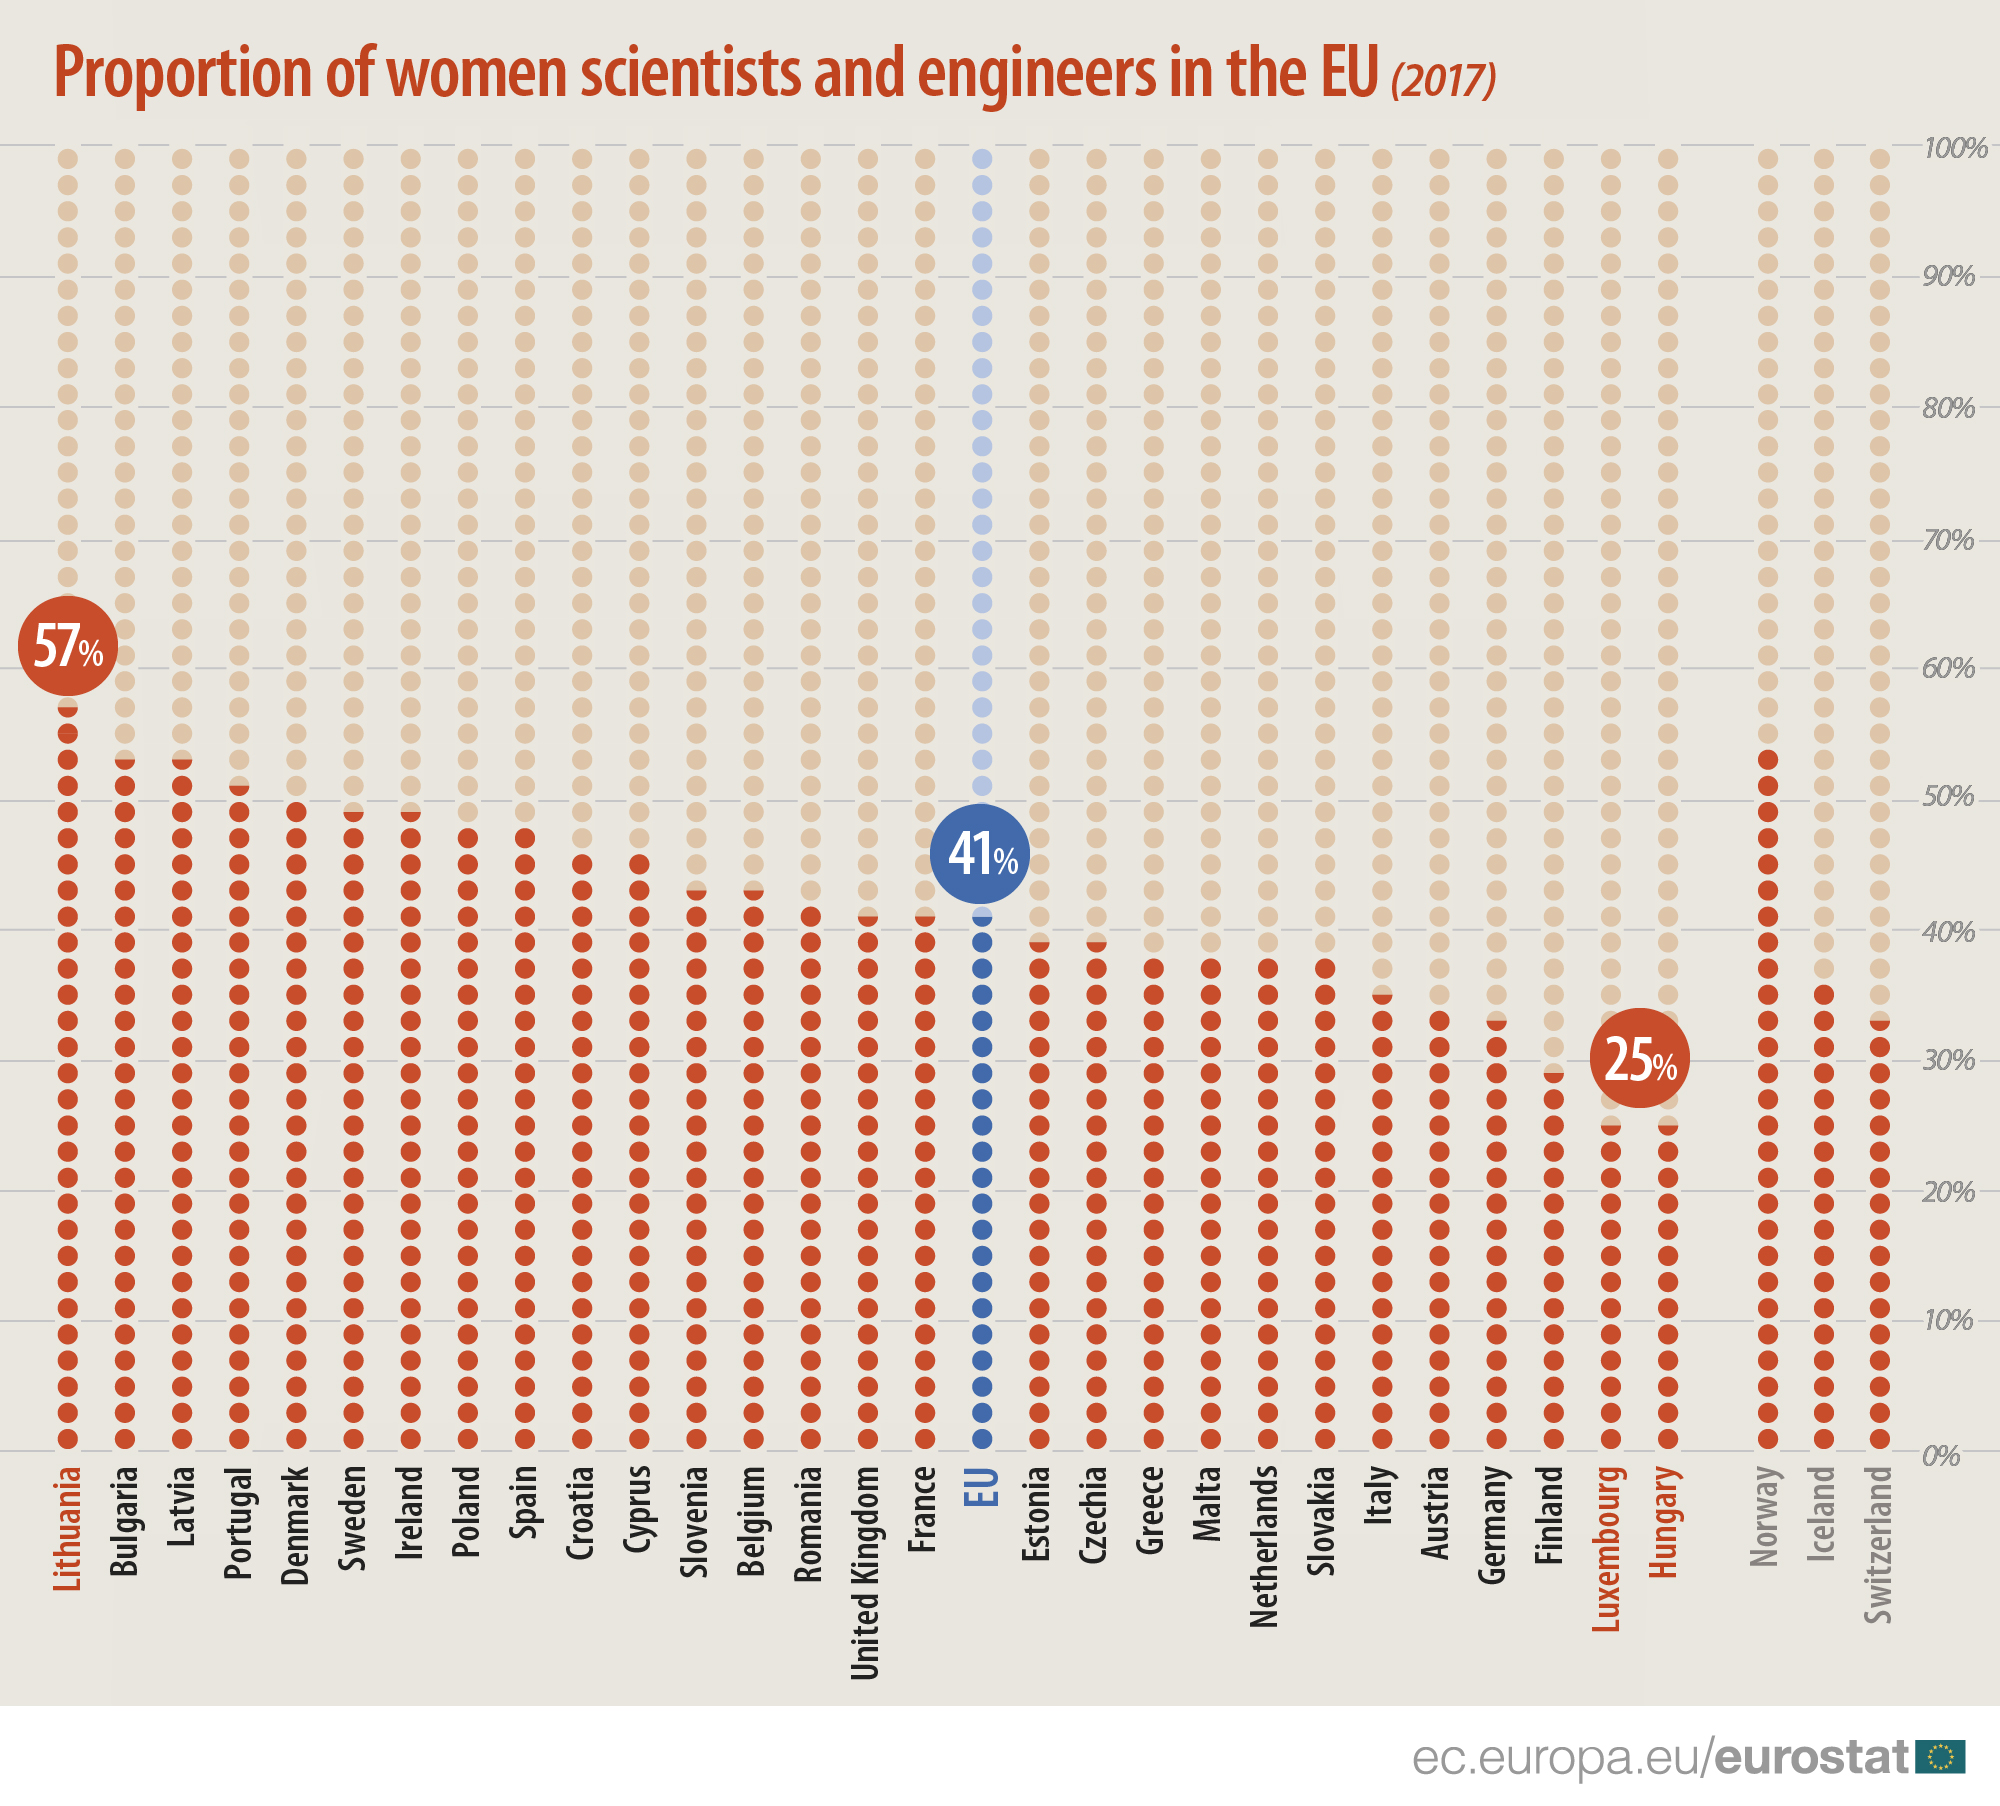 Proportion of women scientists and engineers in the EU, 2017